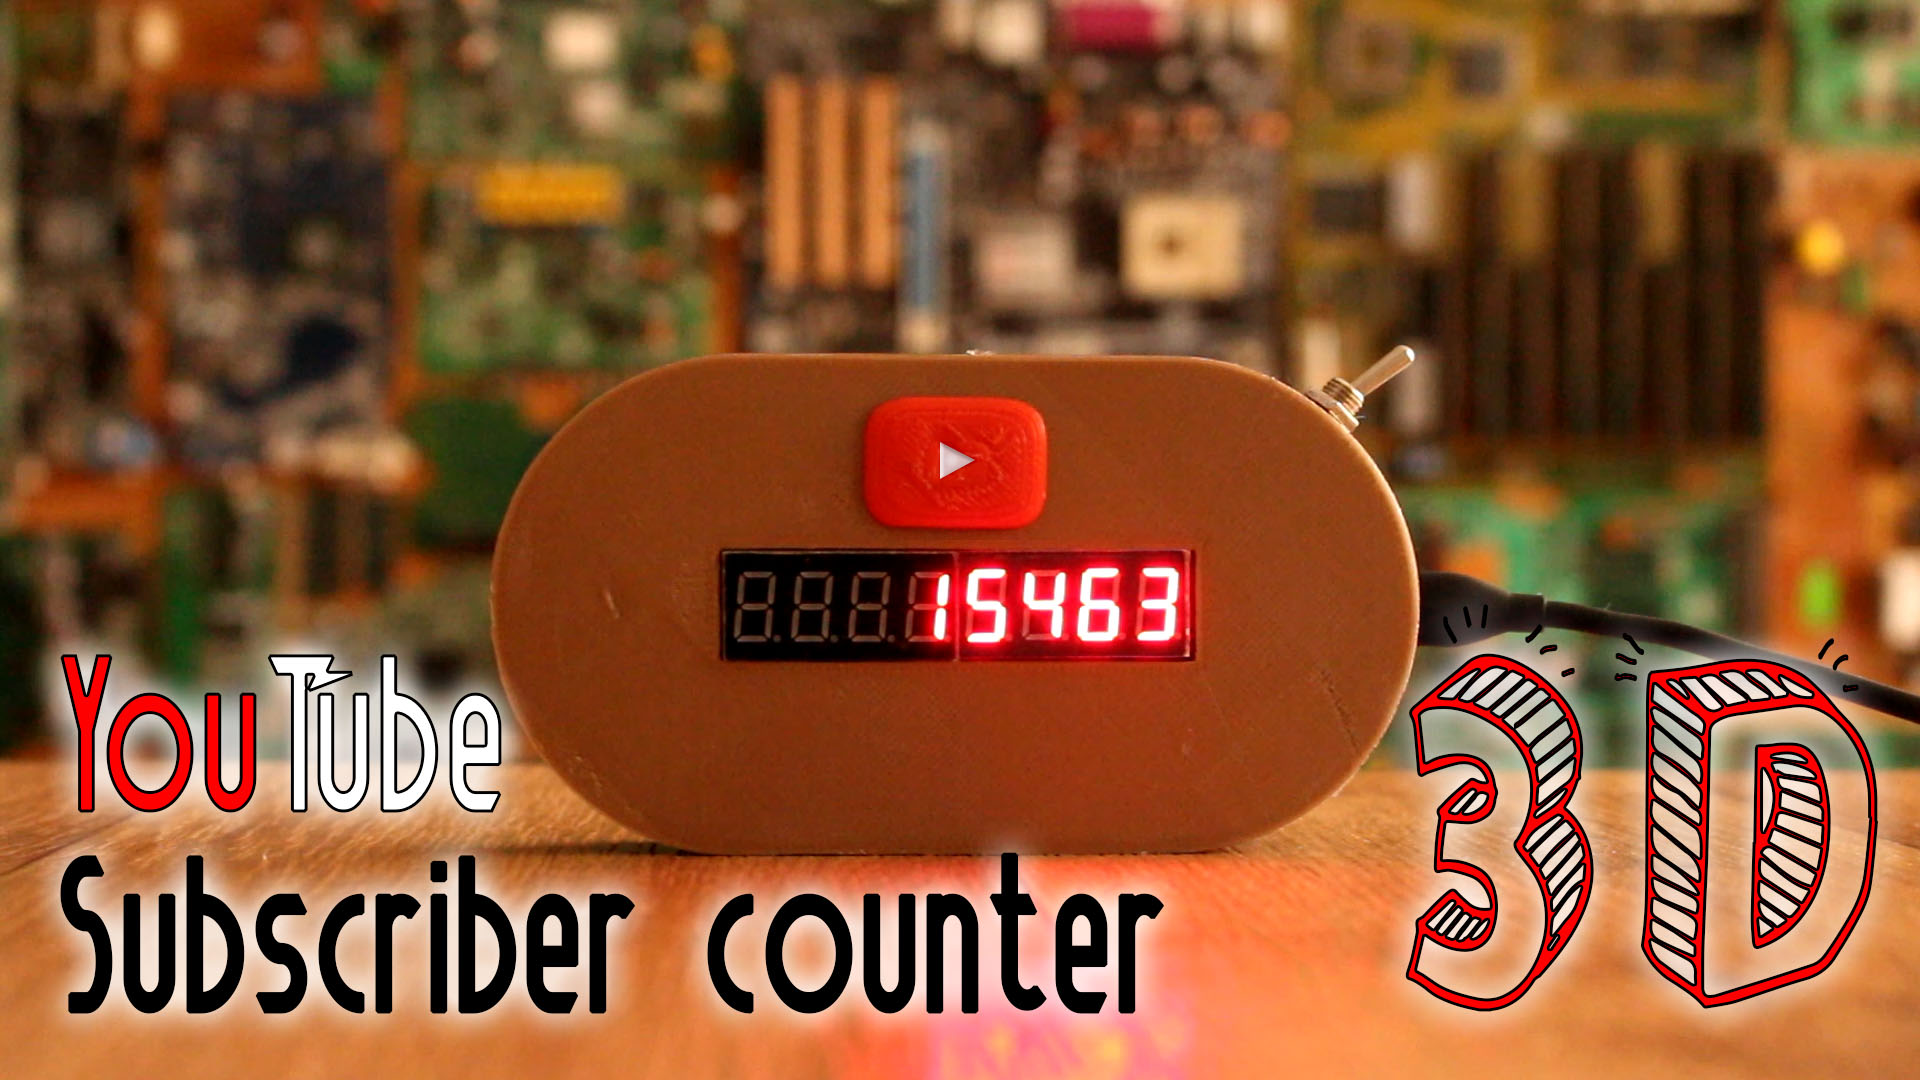 WiFi YouTube subscribers counter esp8266